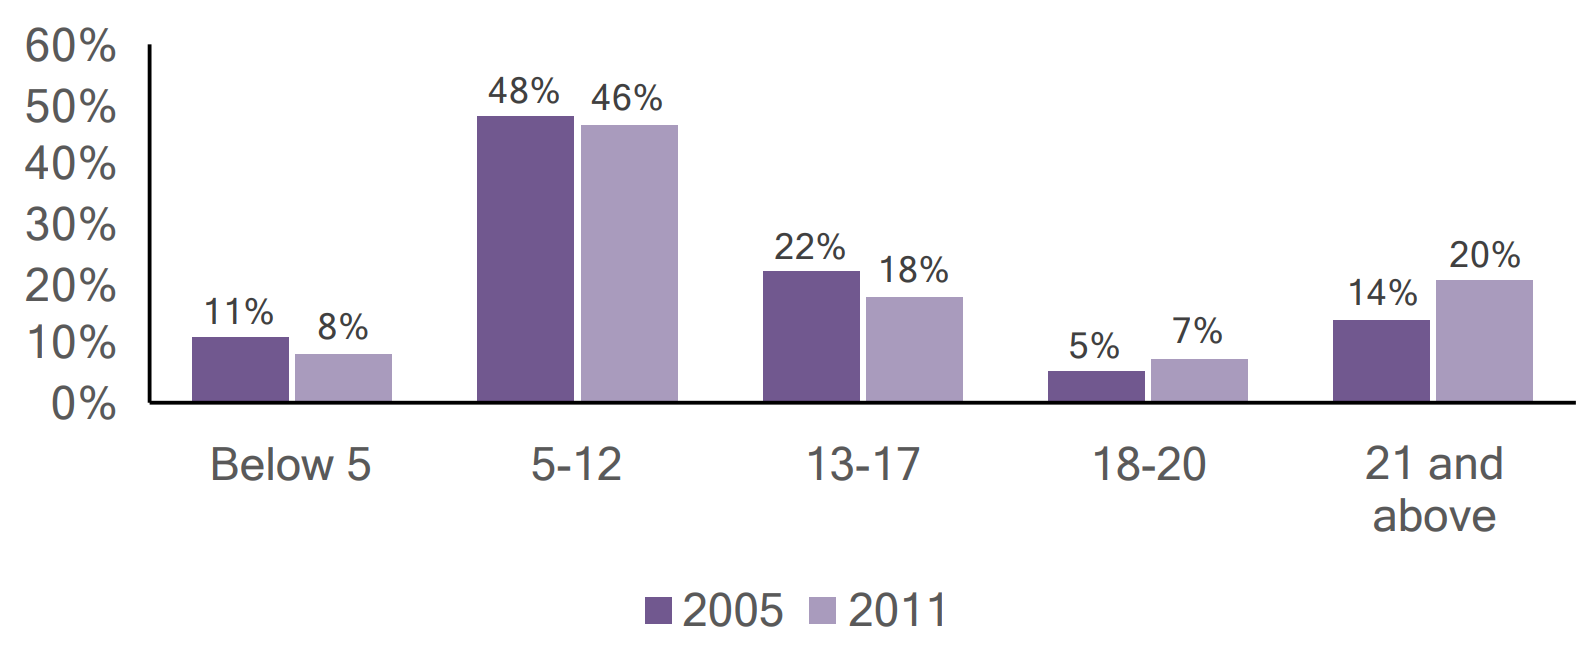 Bar graph of individuals with autism in Cambria county by age, comparing 2005 and 2011 data.